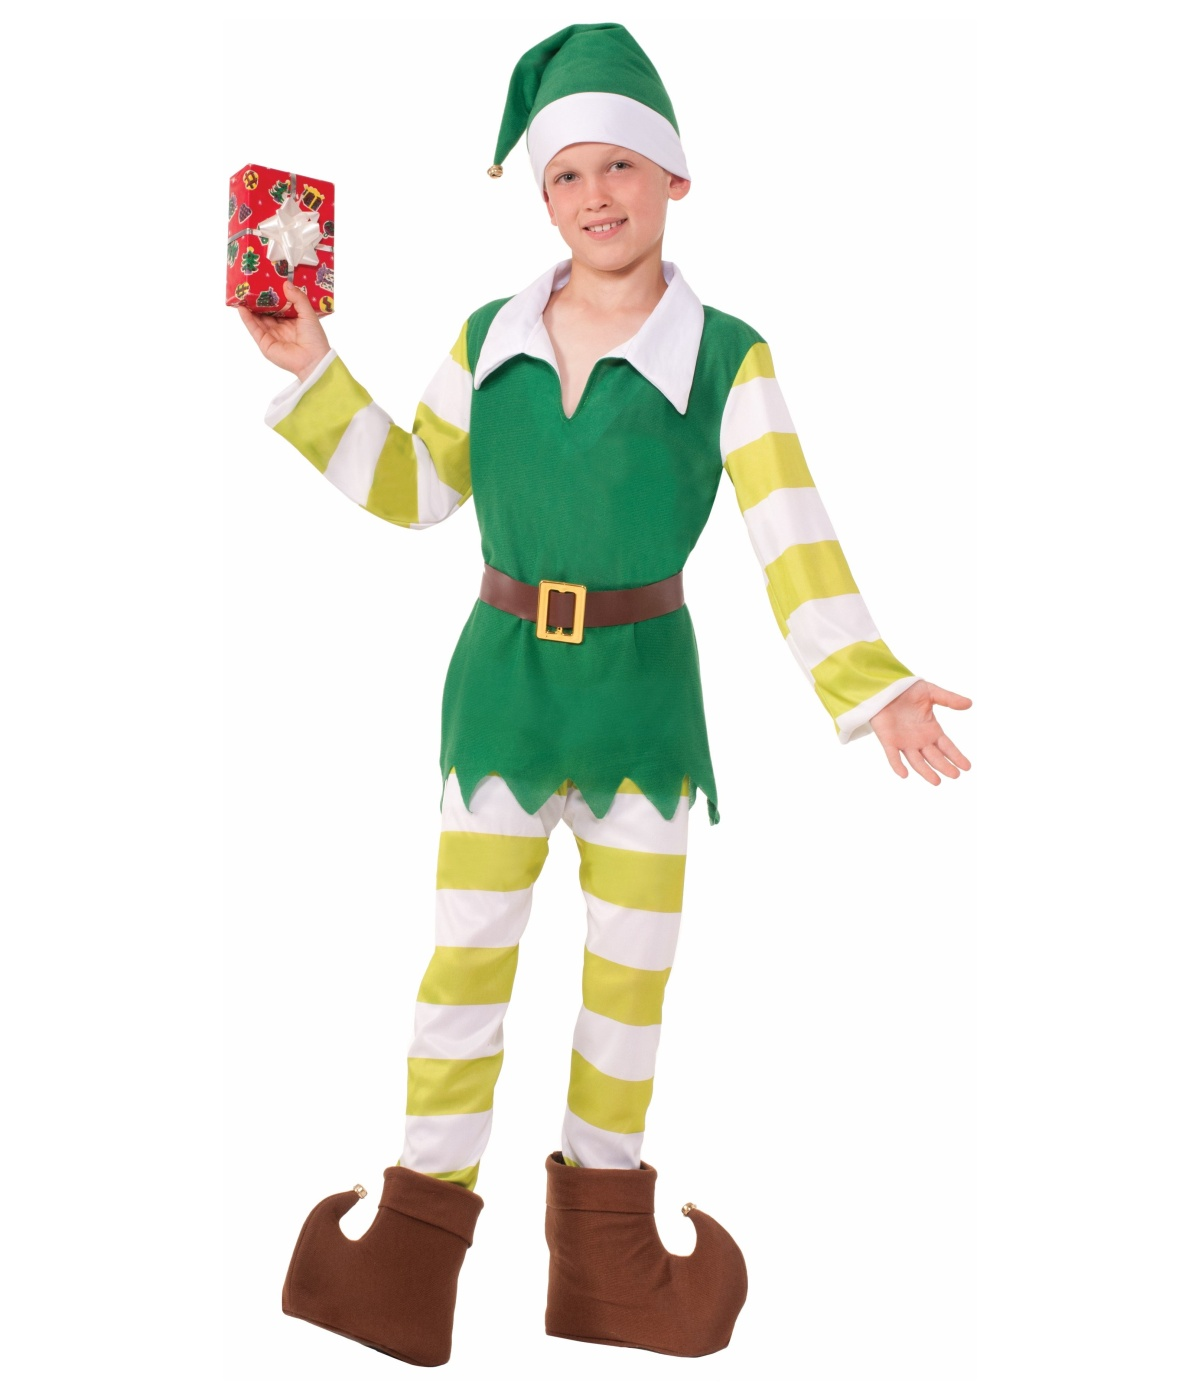 3ba5db334 Jingles the Elf Boy Costume - Christmas Costumes